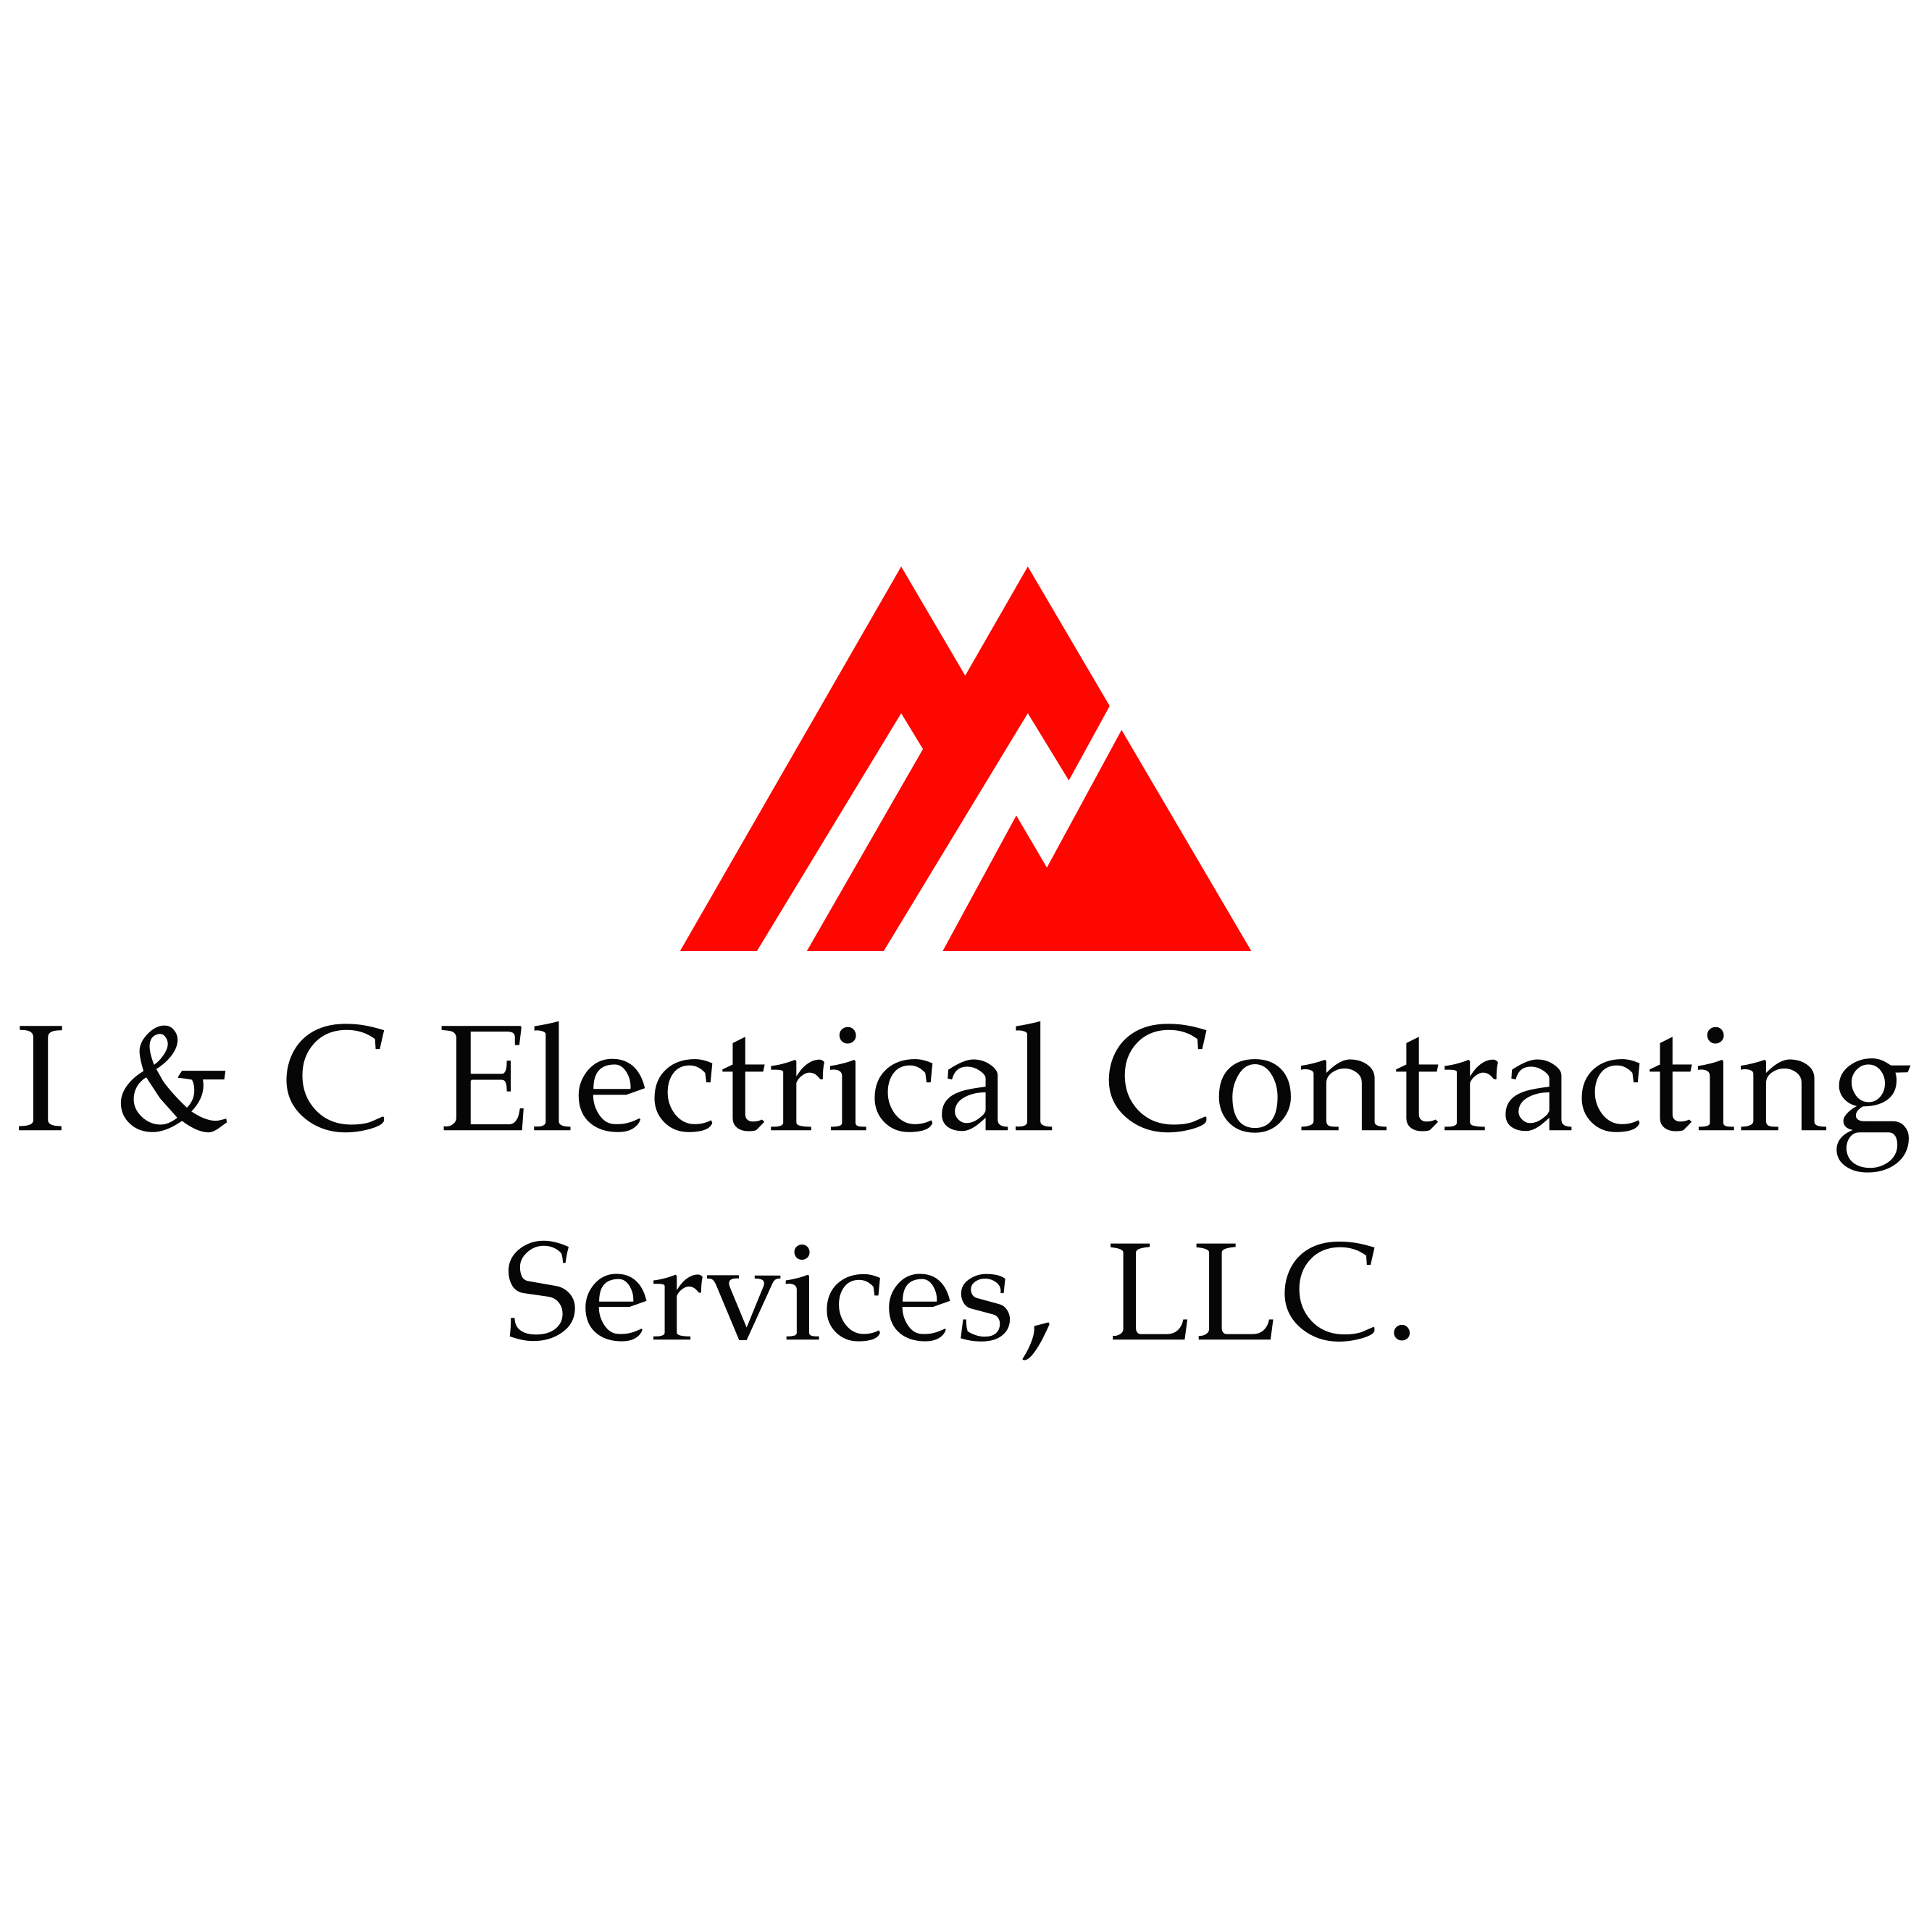 I & C Electrical Contracting Services, LLC image 6